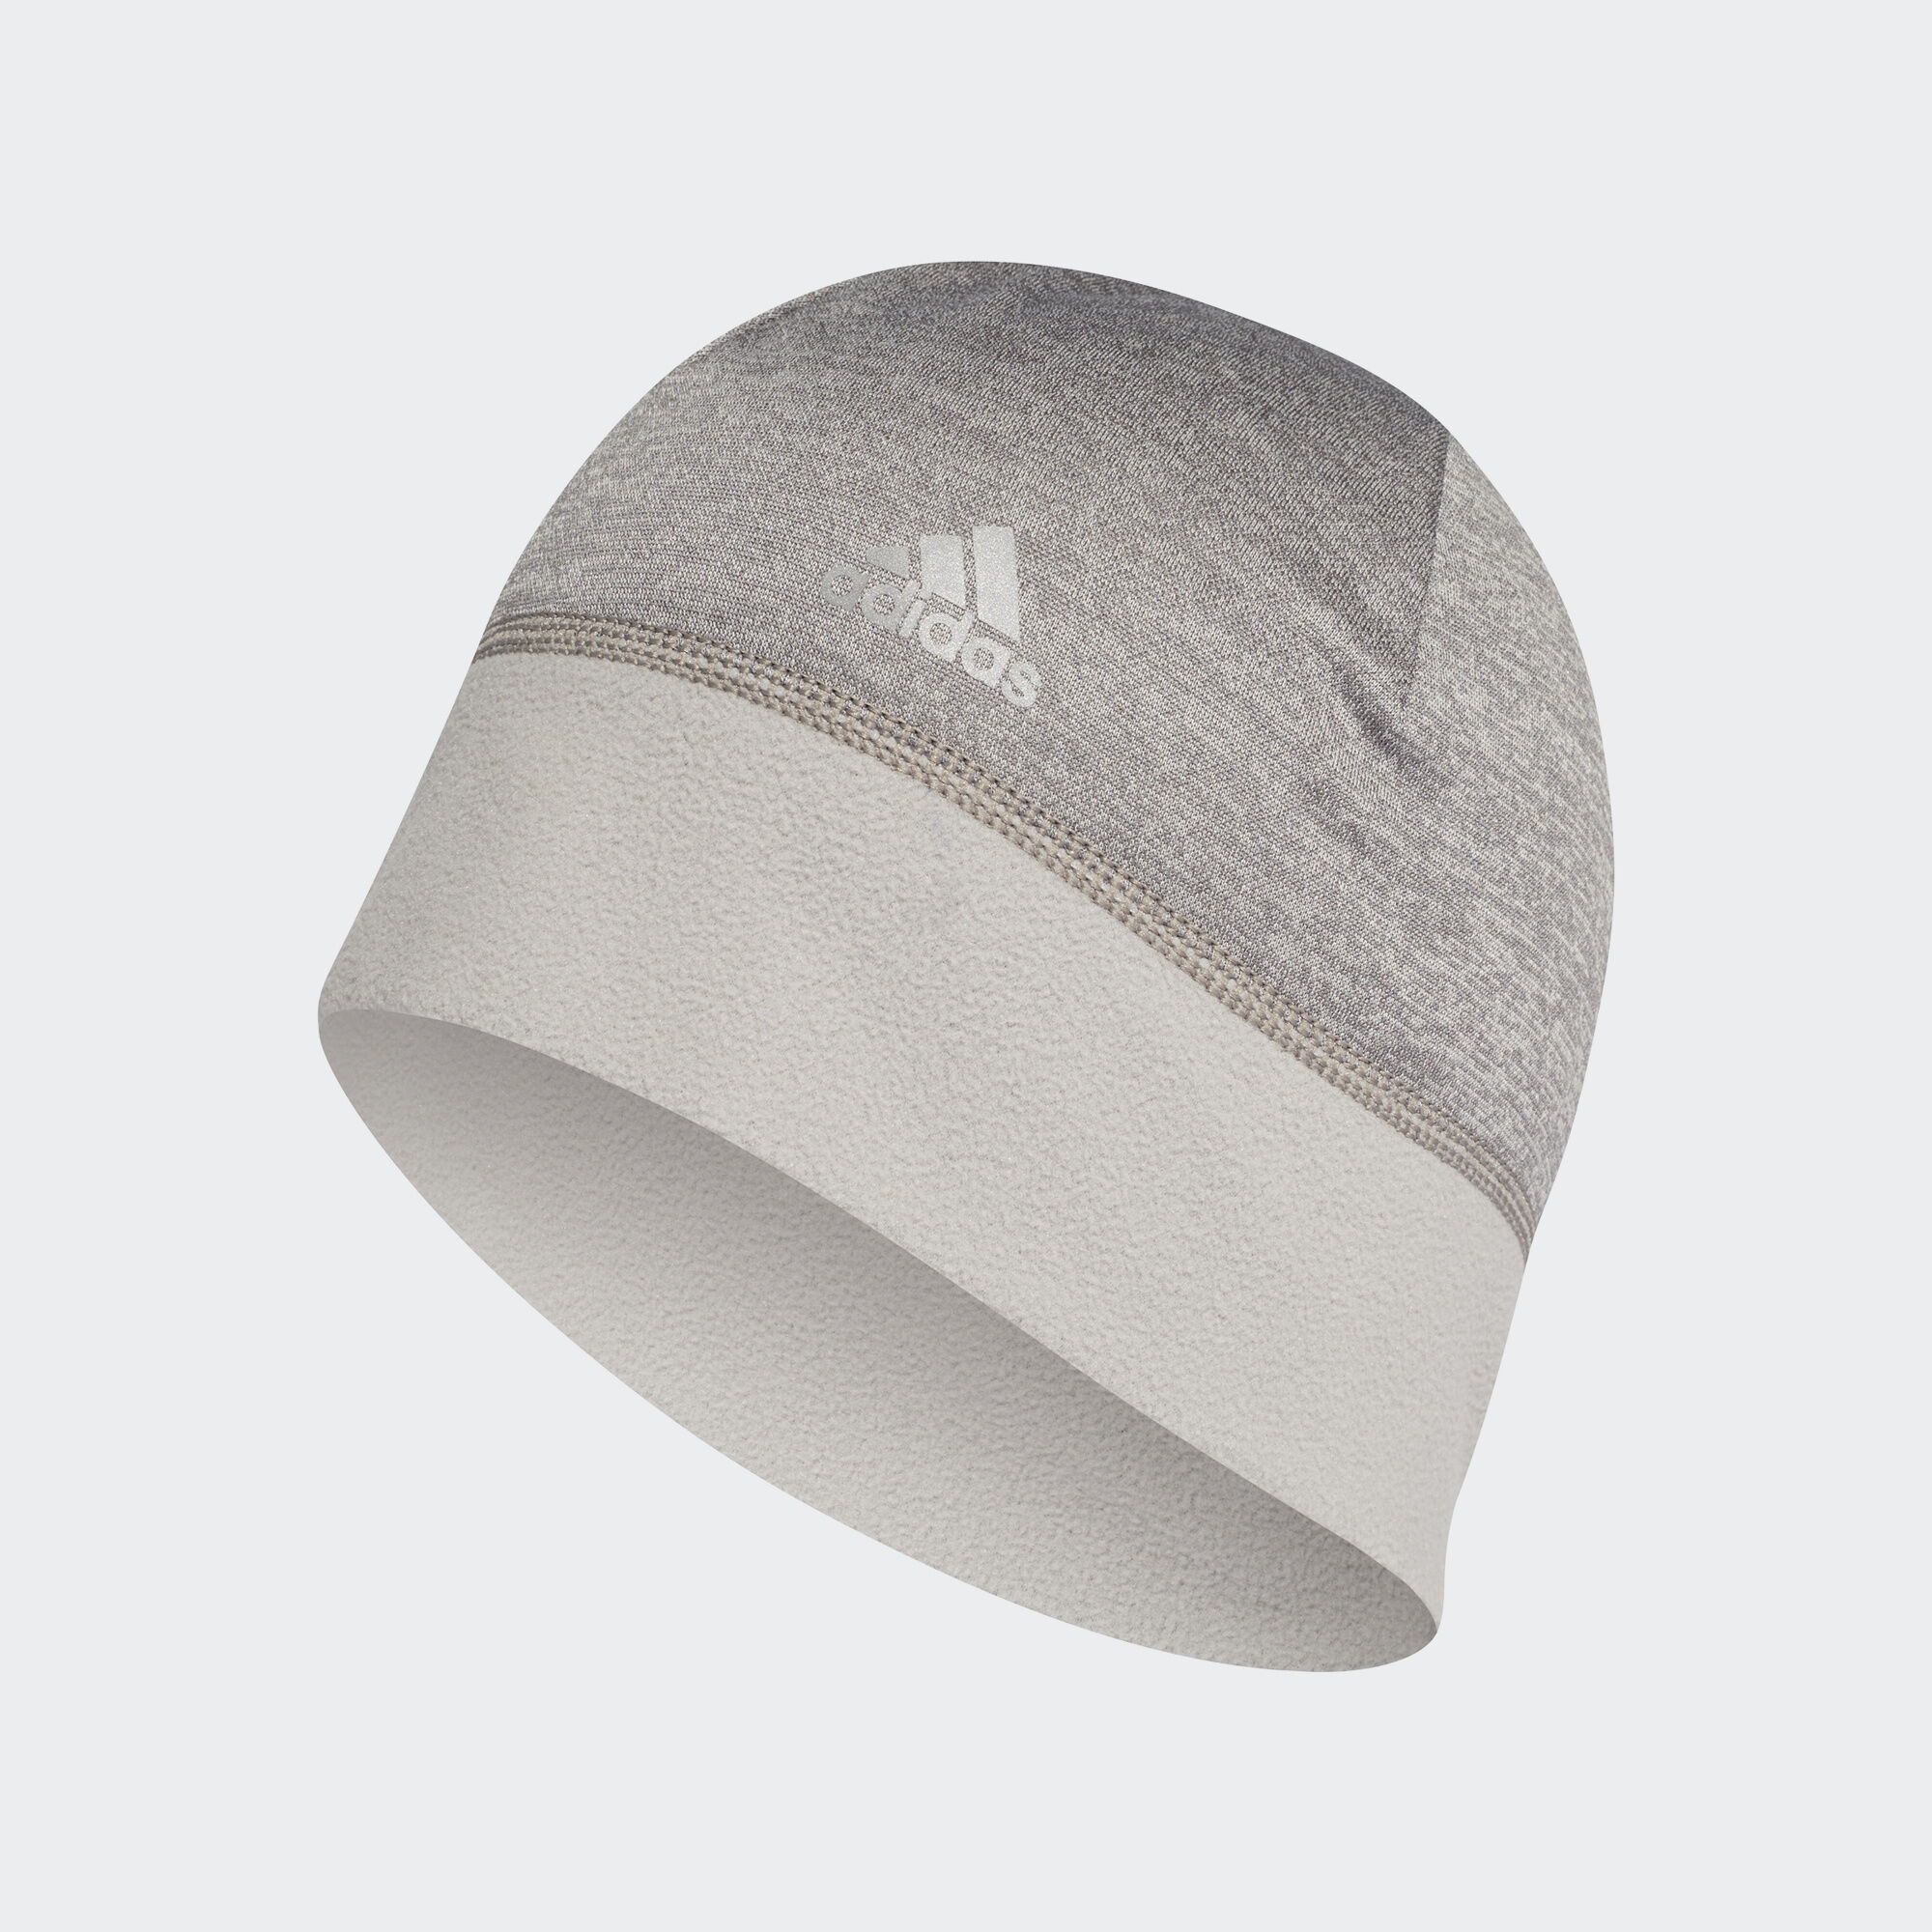 af40e62a8a9 ... clearance adidas climawarm beanie core heather core heather reflective  silver dm4414 c3f3e d39d2